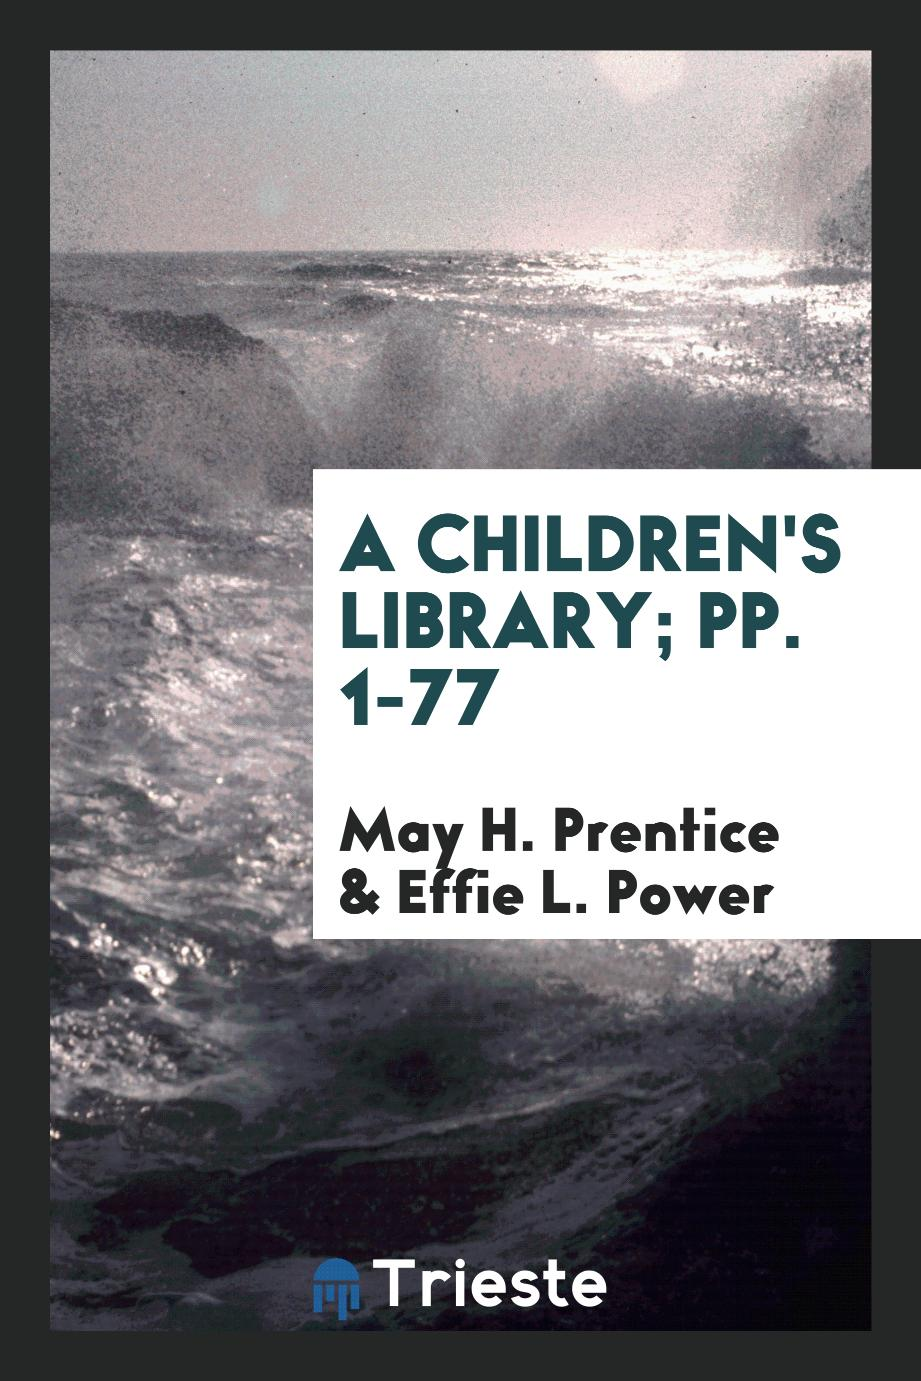 A Children's Library; pp. 1-77